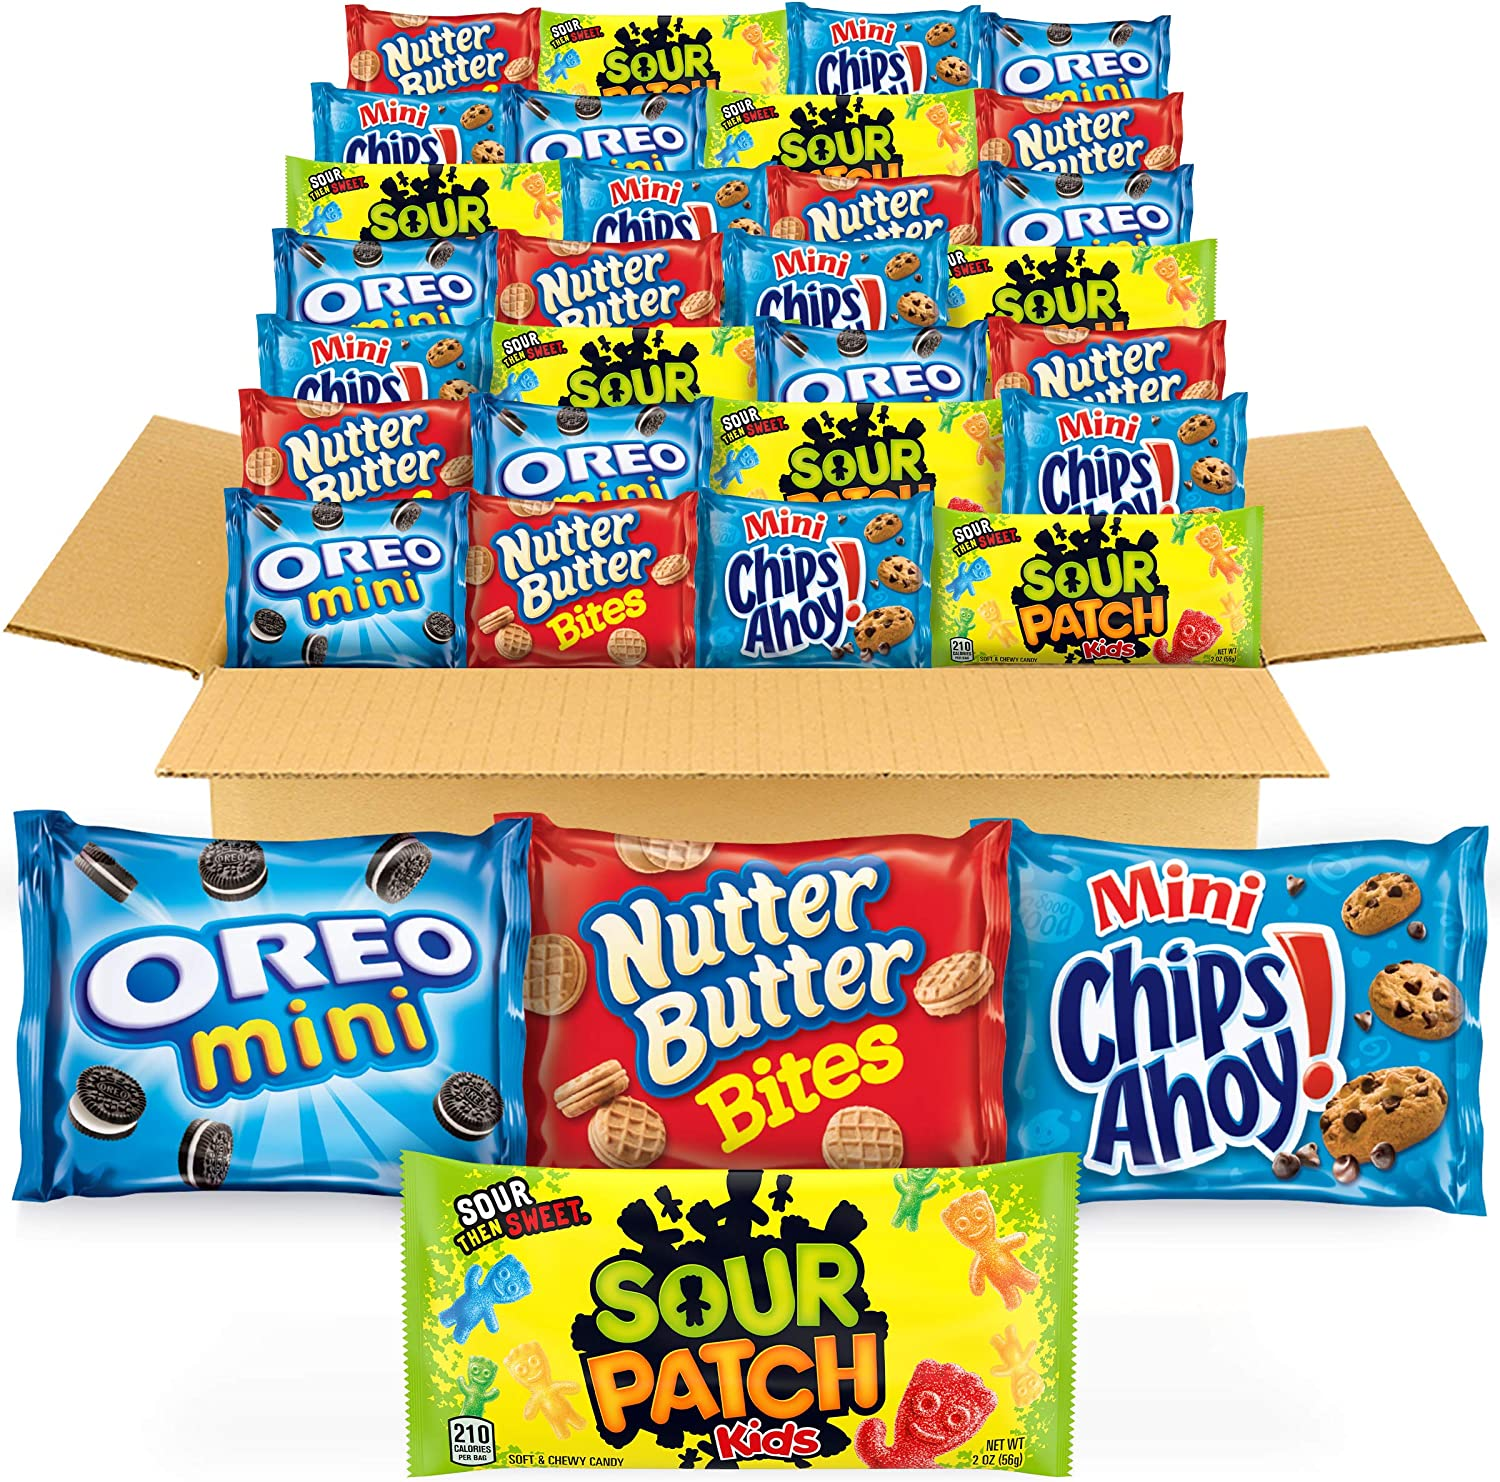 OREO Mini Cookies, CHIPS AHOY! Mini Cookies, SOUR PATCH KIDS Candy & Nutter Butter Bites Cookies & Candy Variety Pack, Easter Cookie Gifts, 32 Snack Packs